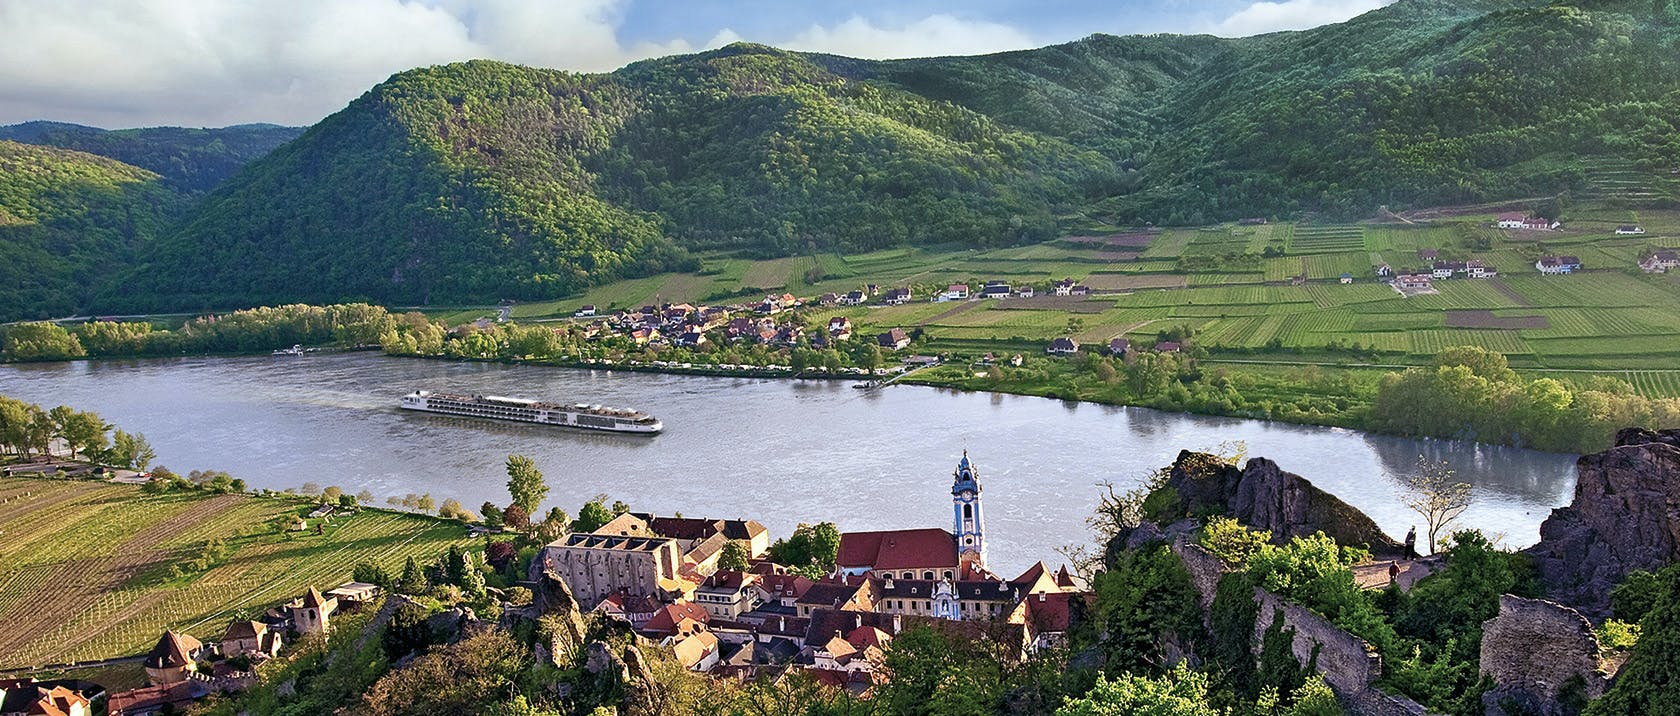 Germany's Rhine forms one of the most spellbinding rivers systems in Europe.